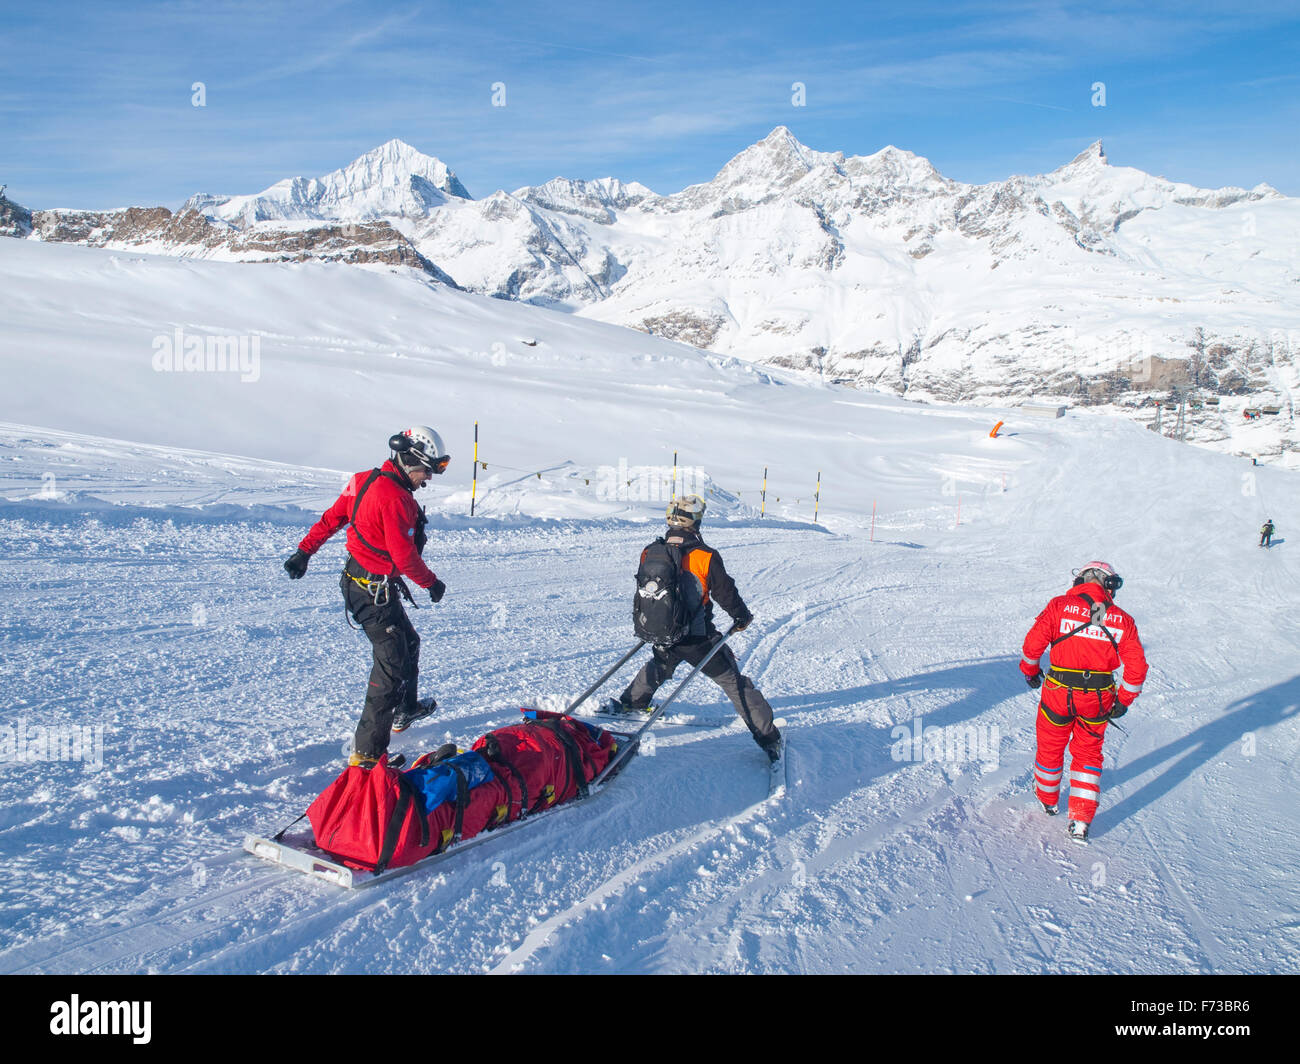 A rescue team is transporting a wounded skier on a rescue sled down the ski slope of ski resort Zermatt in the Swiss - Stock Image